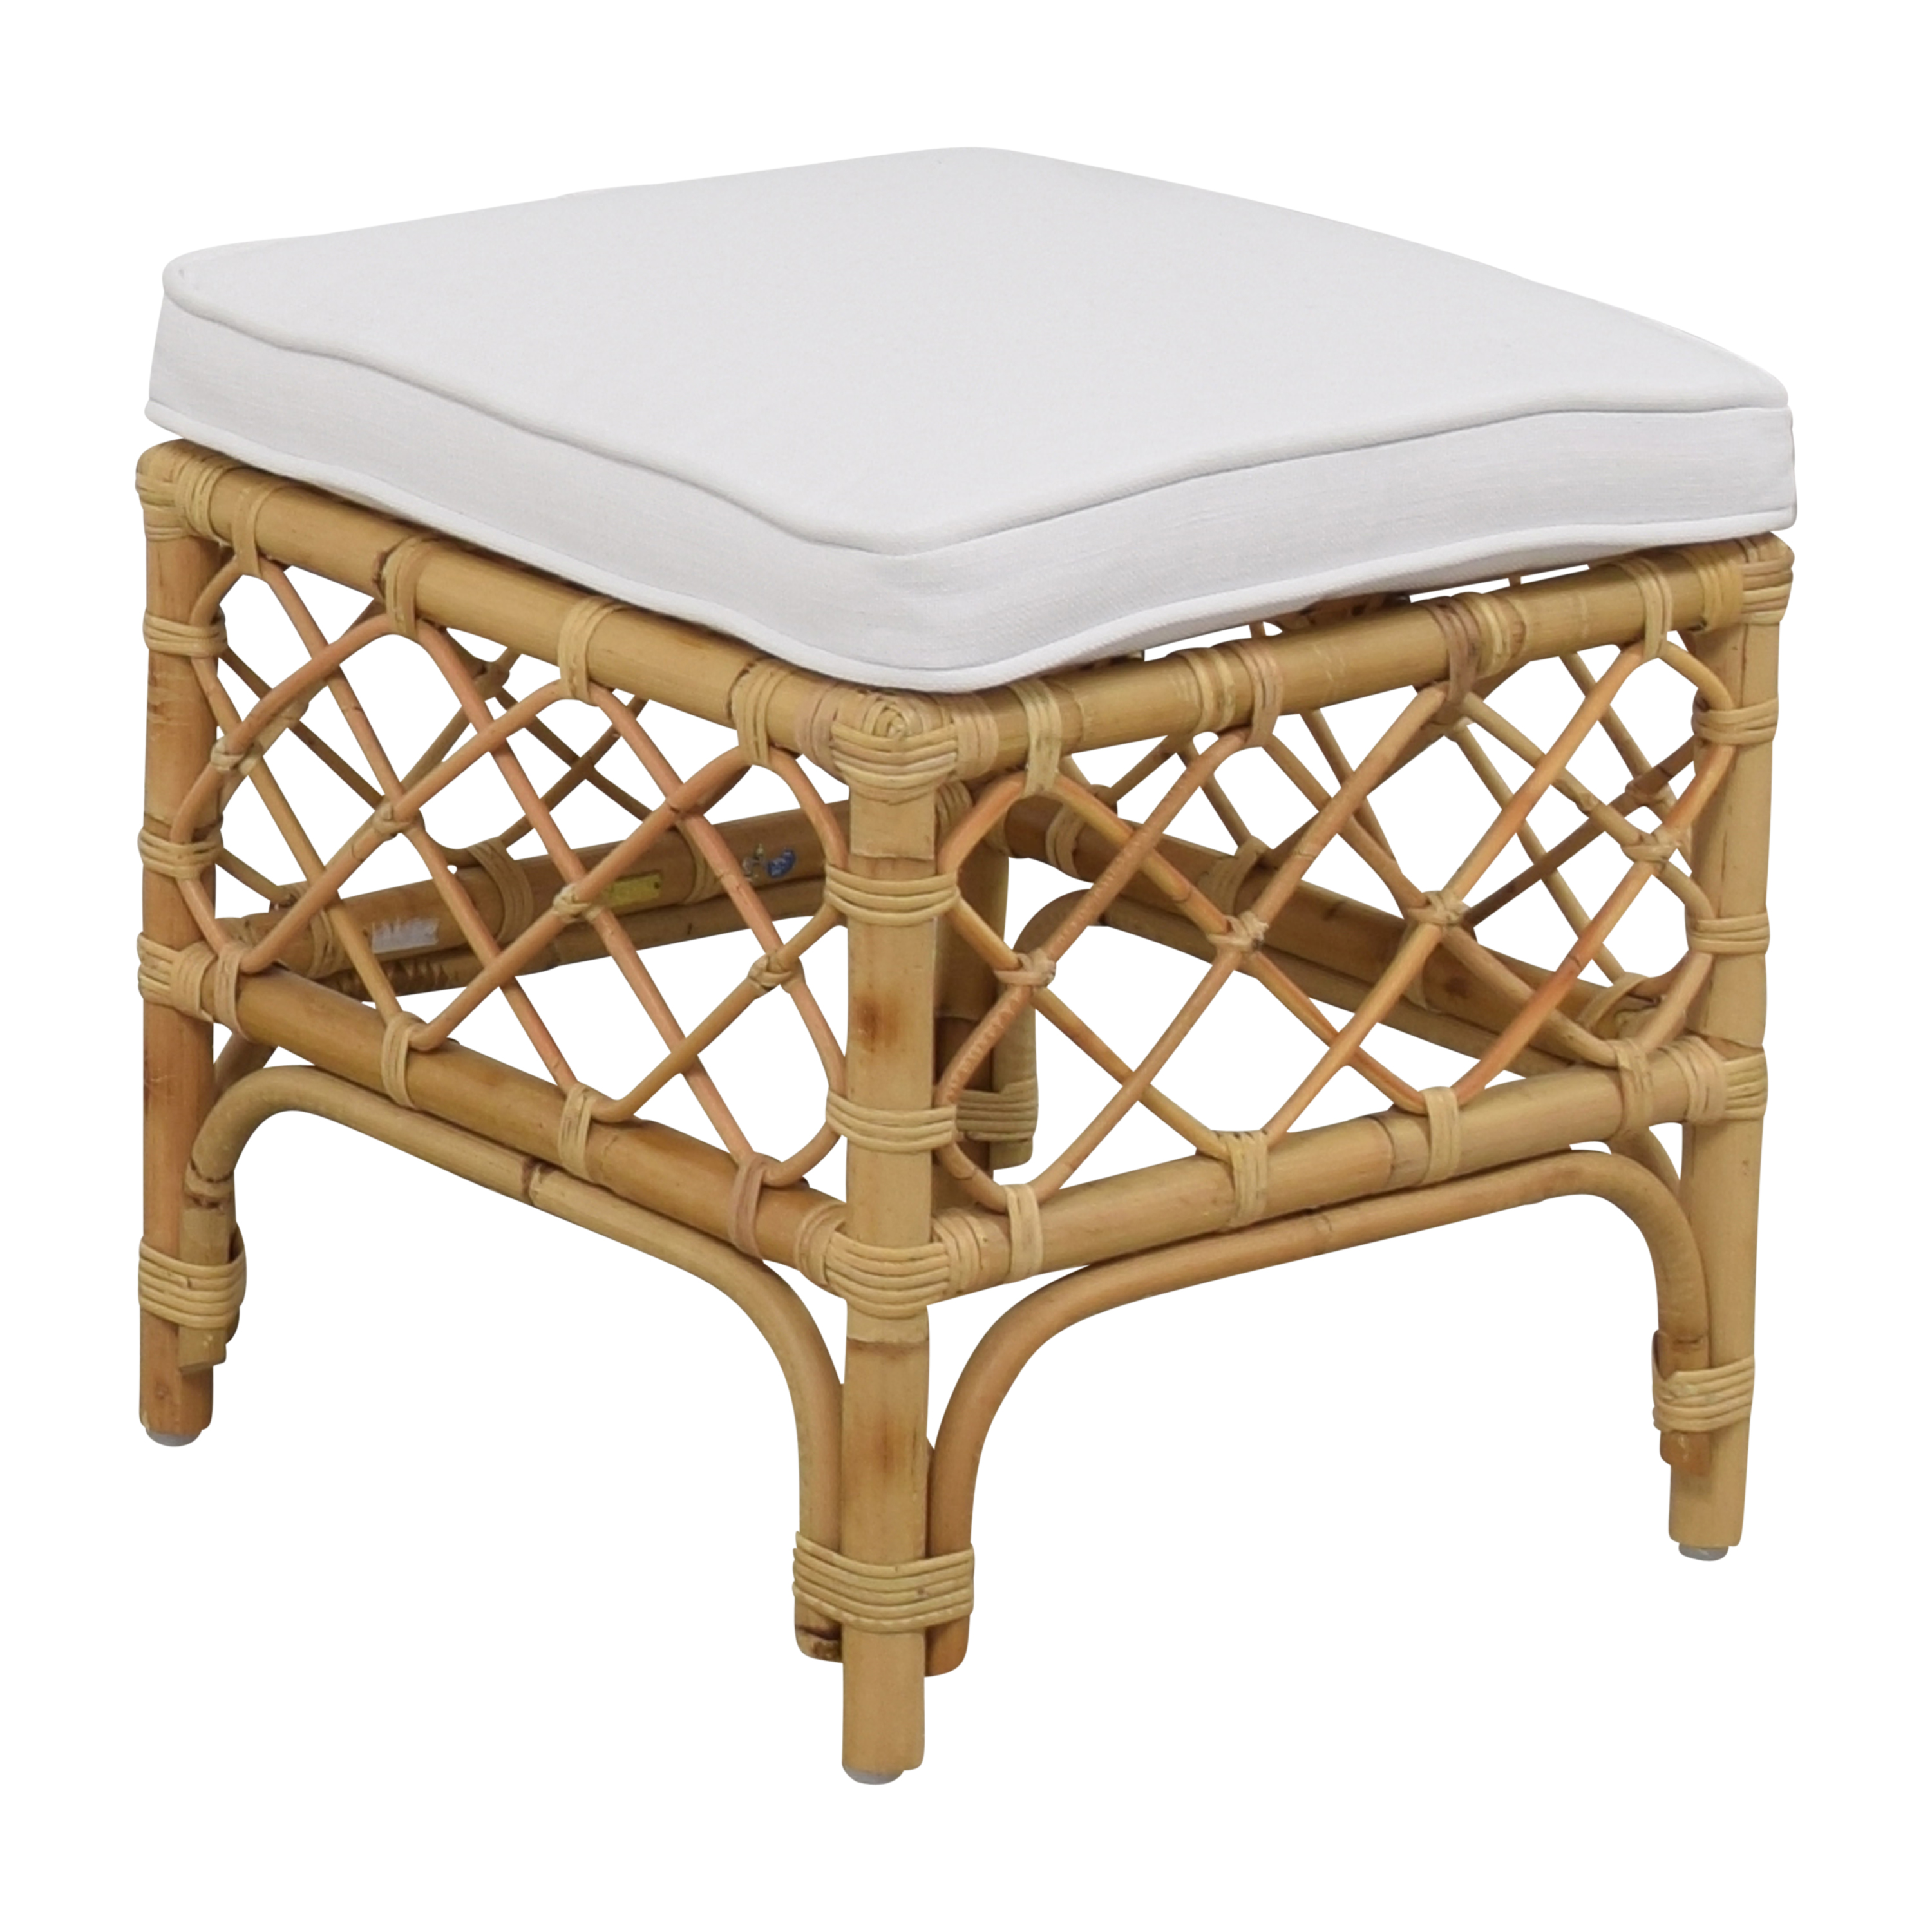 shop Serena & Lily Avalon Stool Serena & Lily Chairs